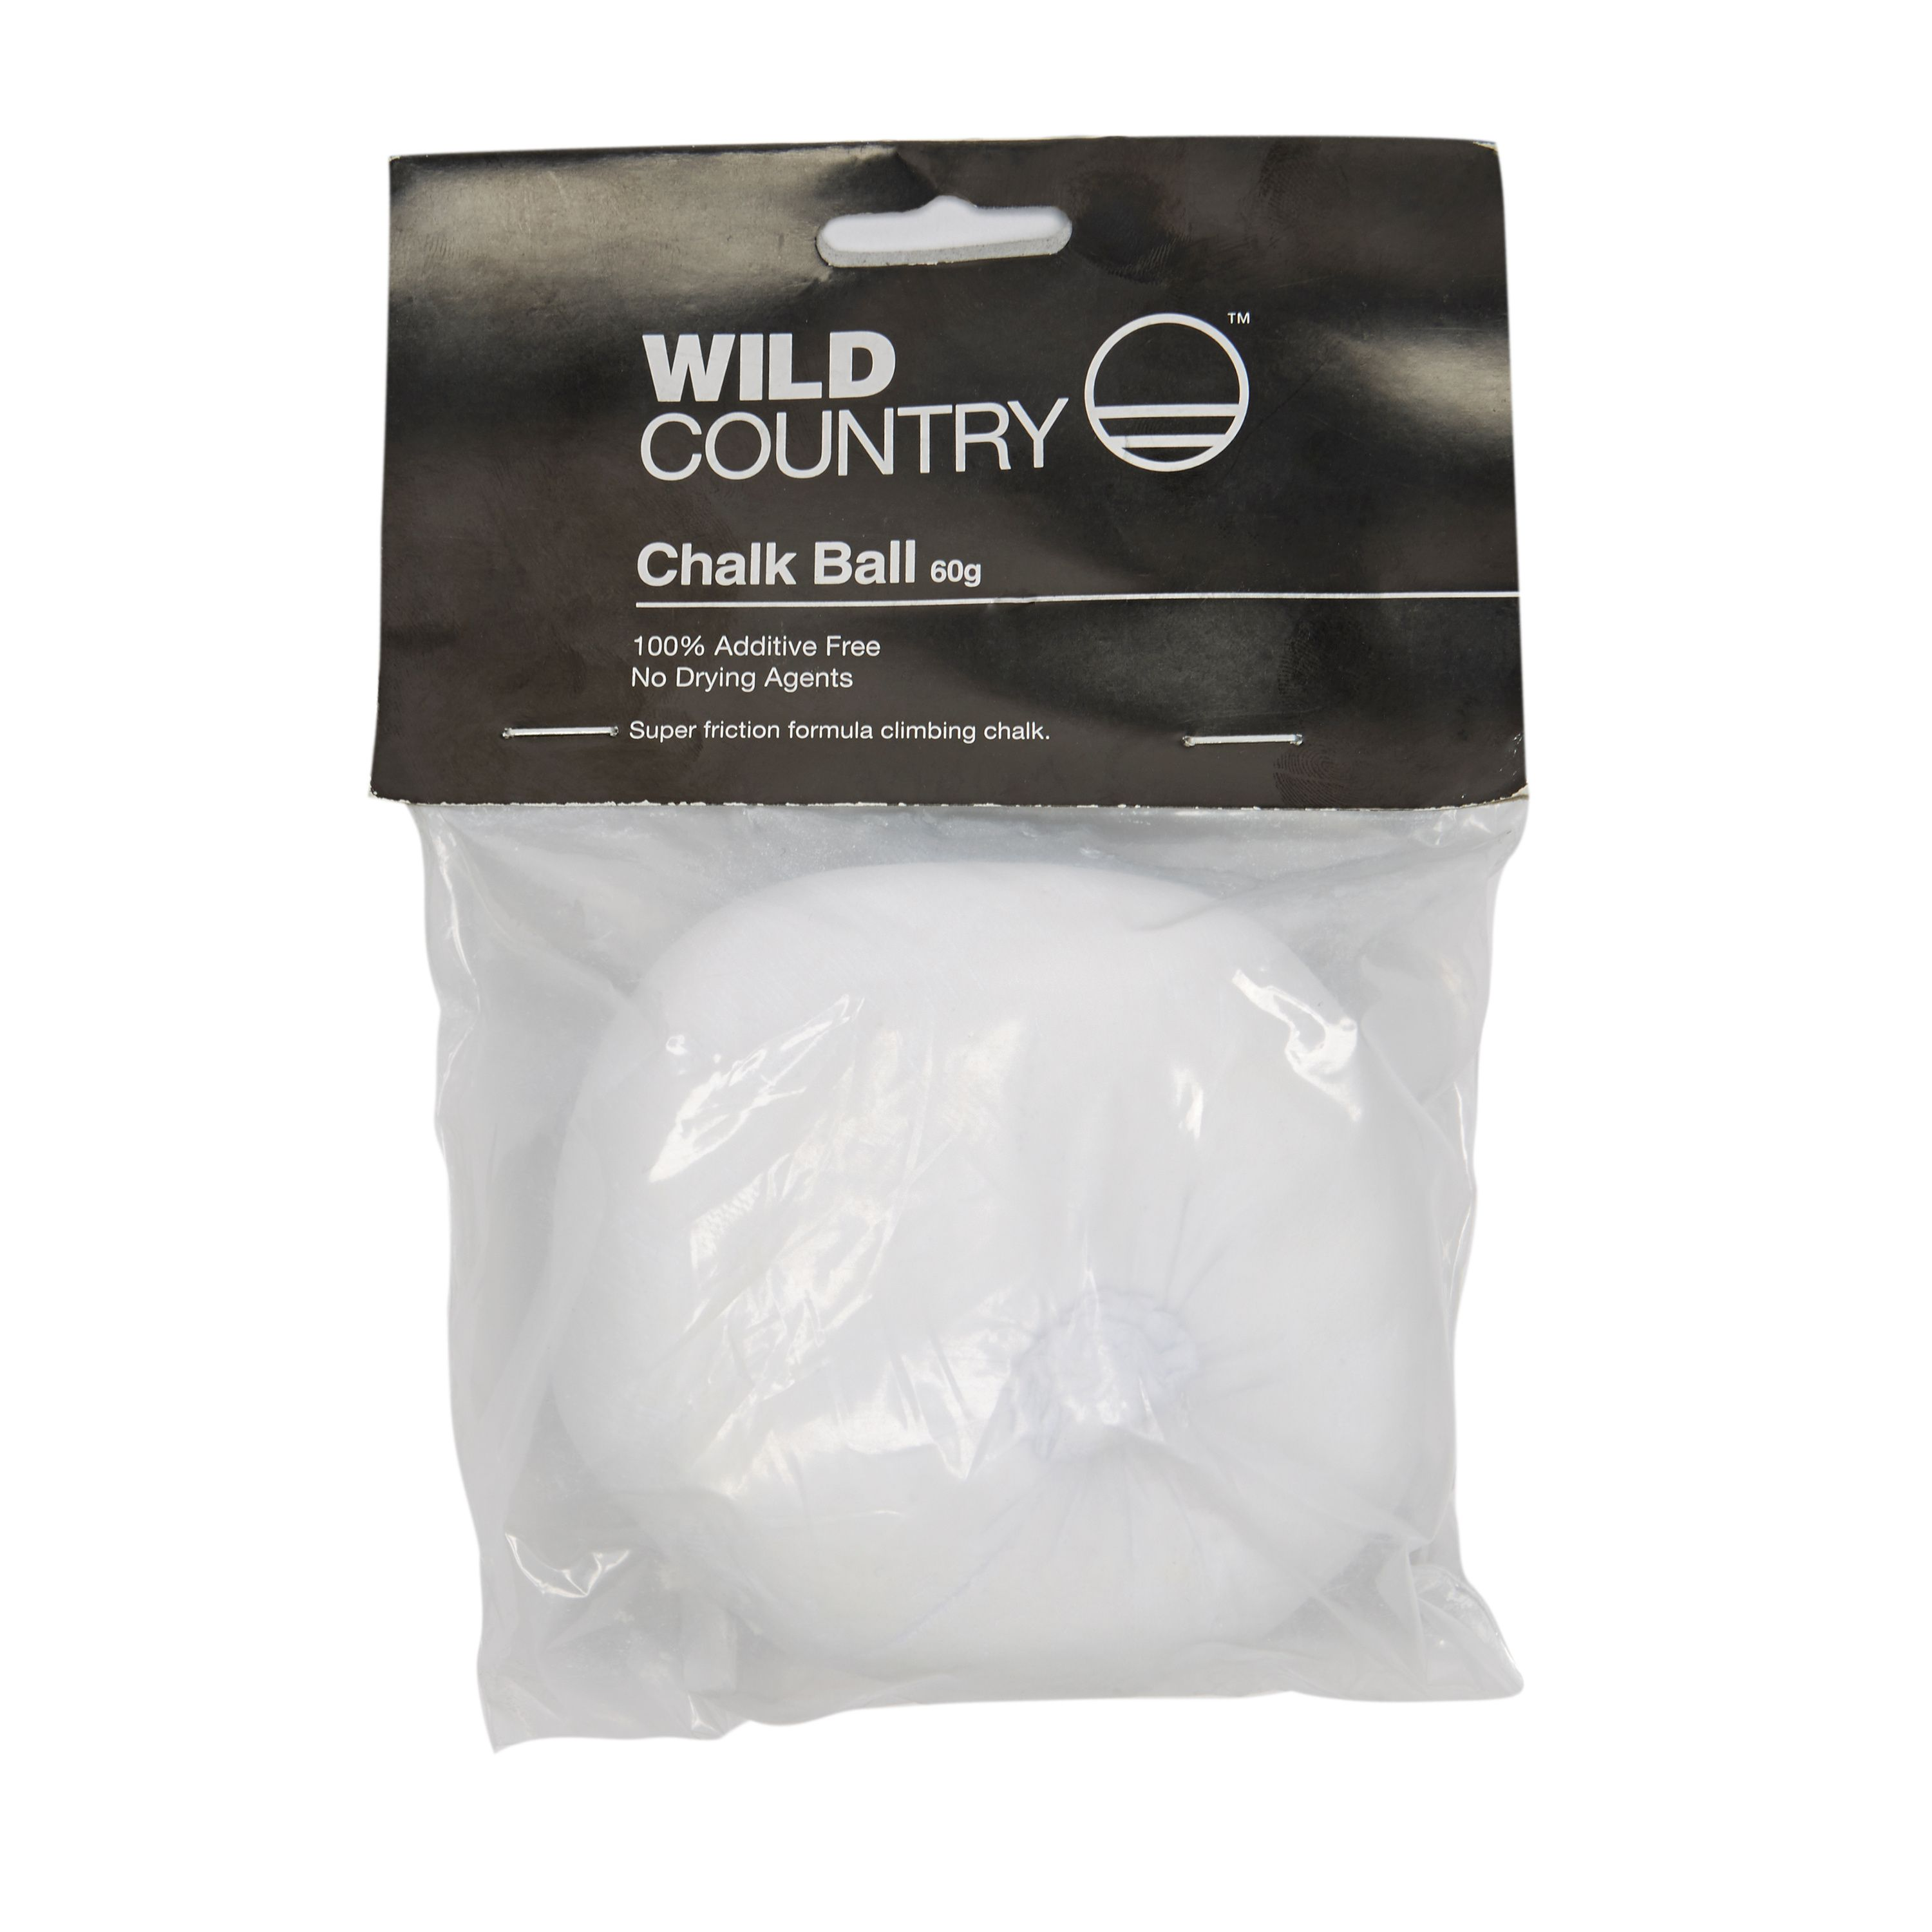 WILD COUNTRY Pure Chalk Ball